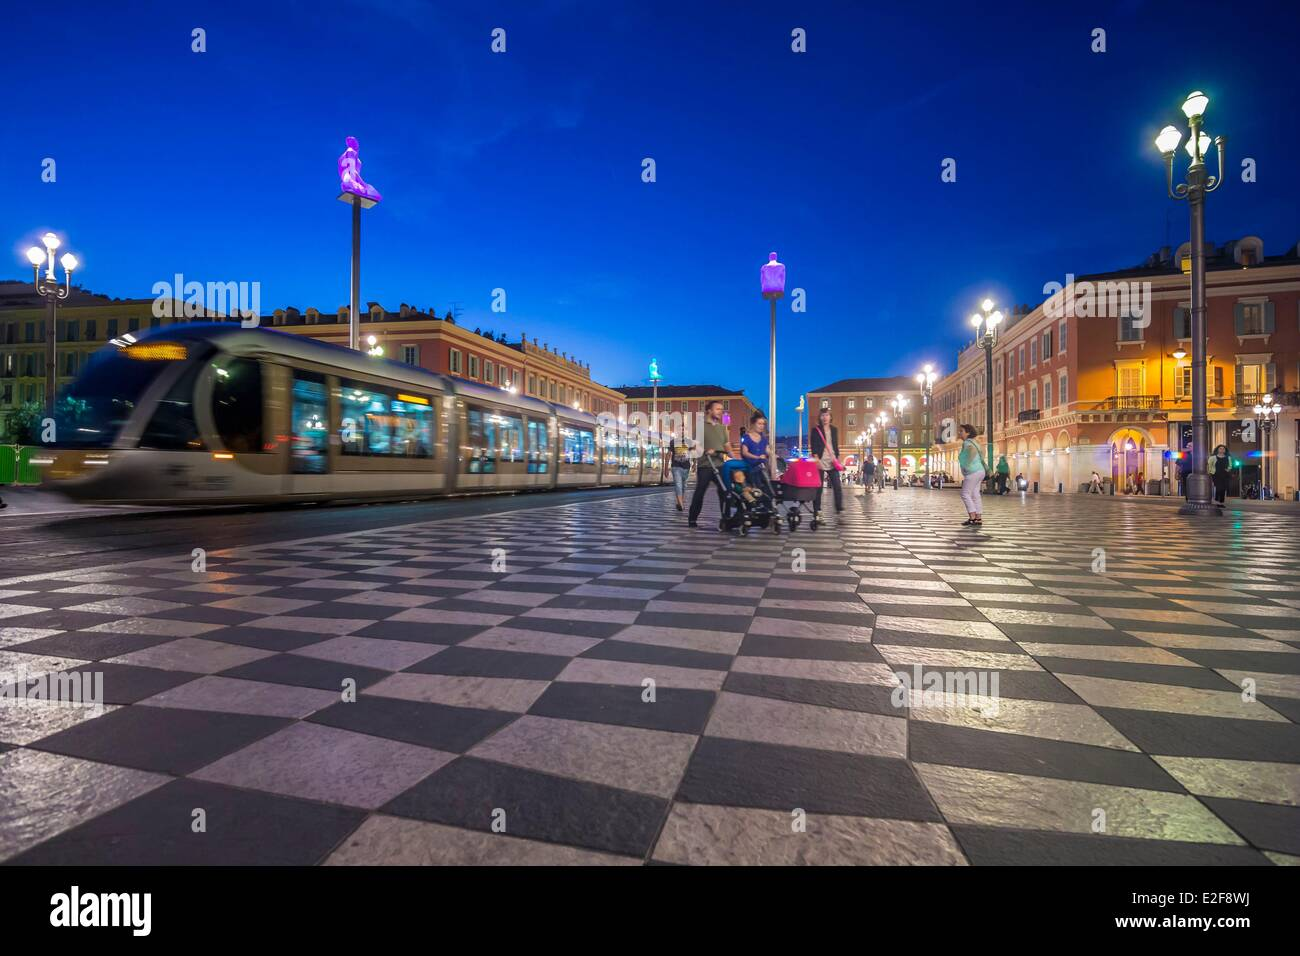 France, Alpes Maritimes, Nice, Place Massena, streetcar and artwork called Conversation a Nice by Jaume Pensa - Stock Image